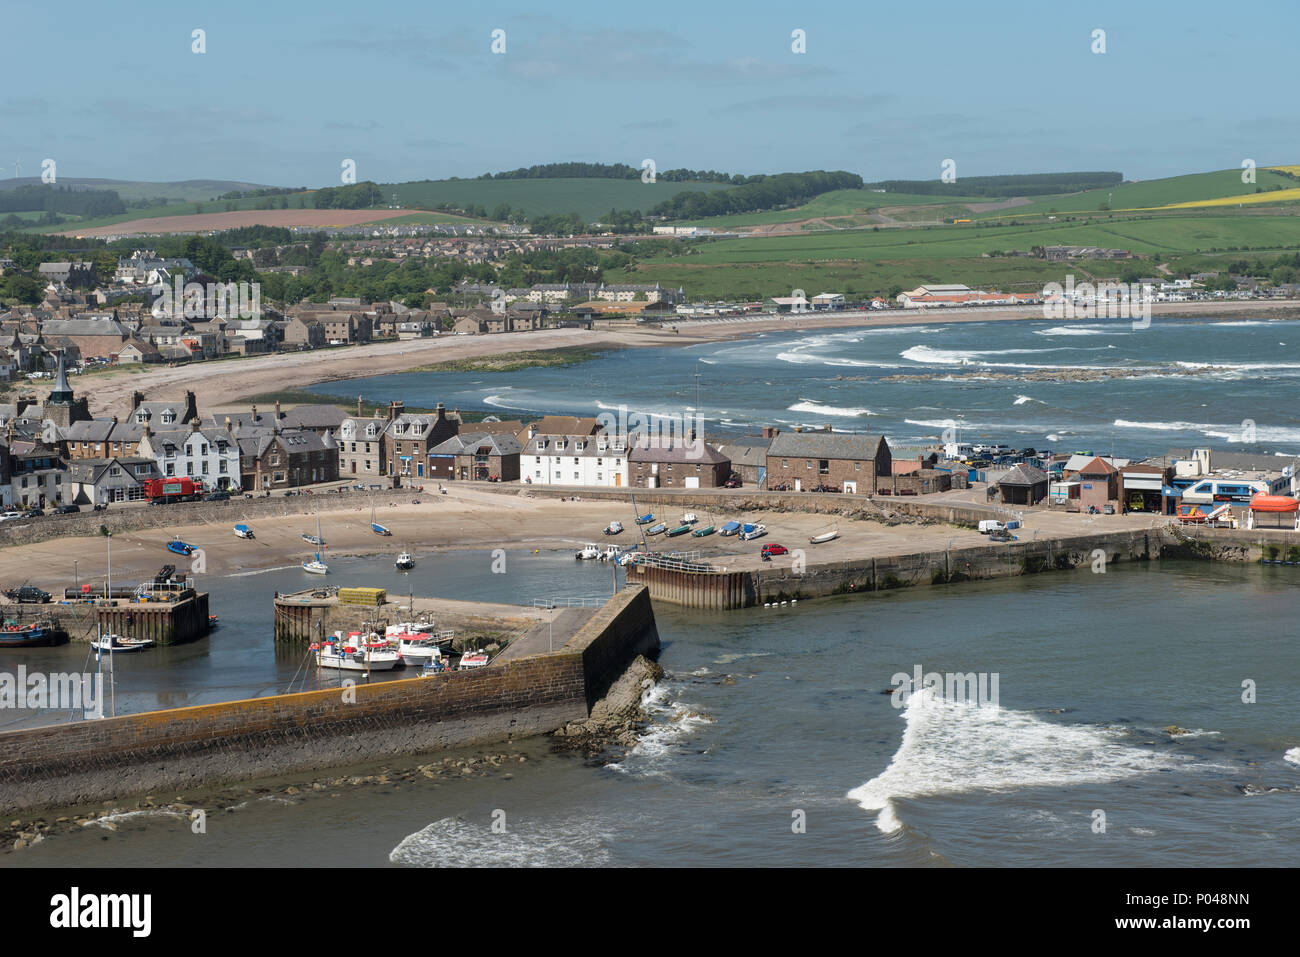 Stonehaven harbour and bay, Stonehaven, Aberdeenshire, Scotland. - Stock Image